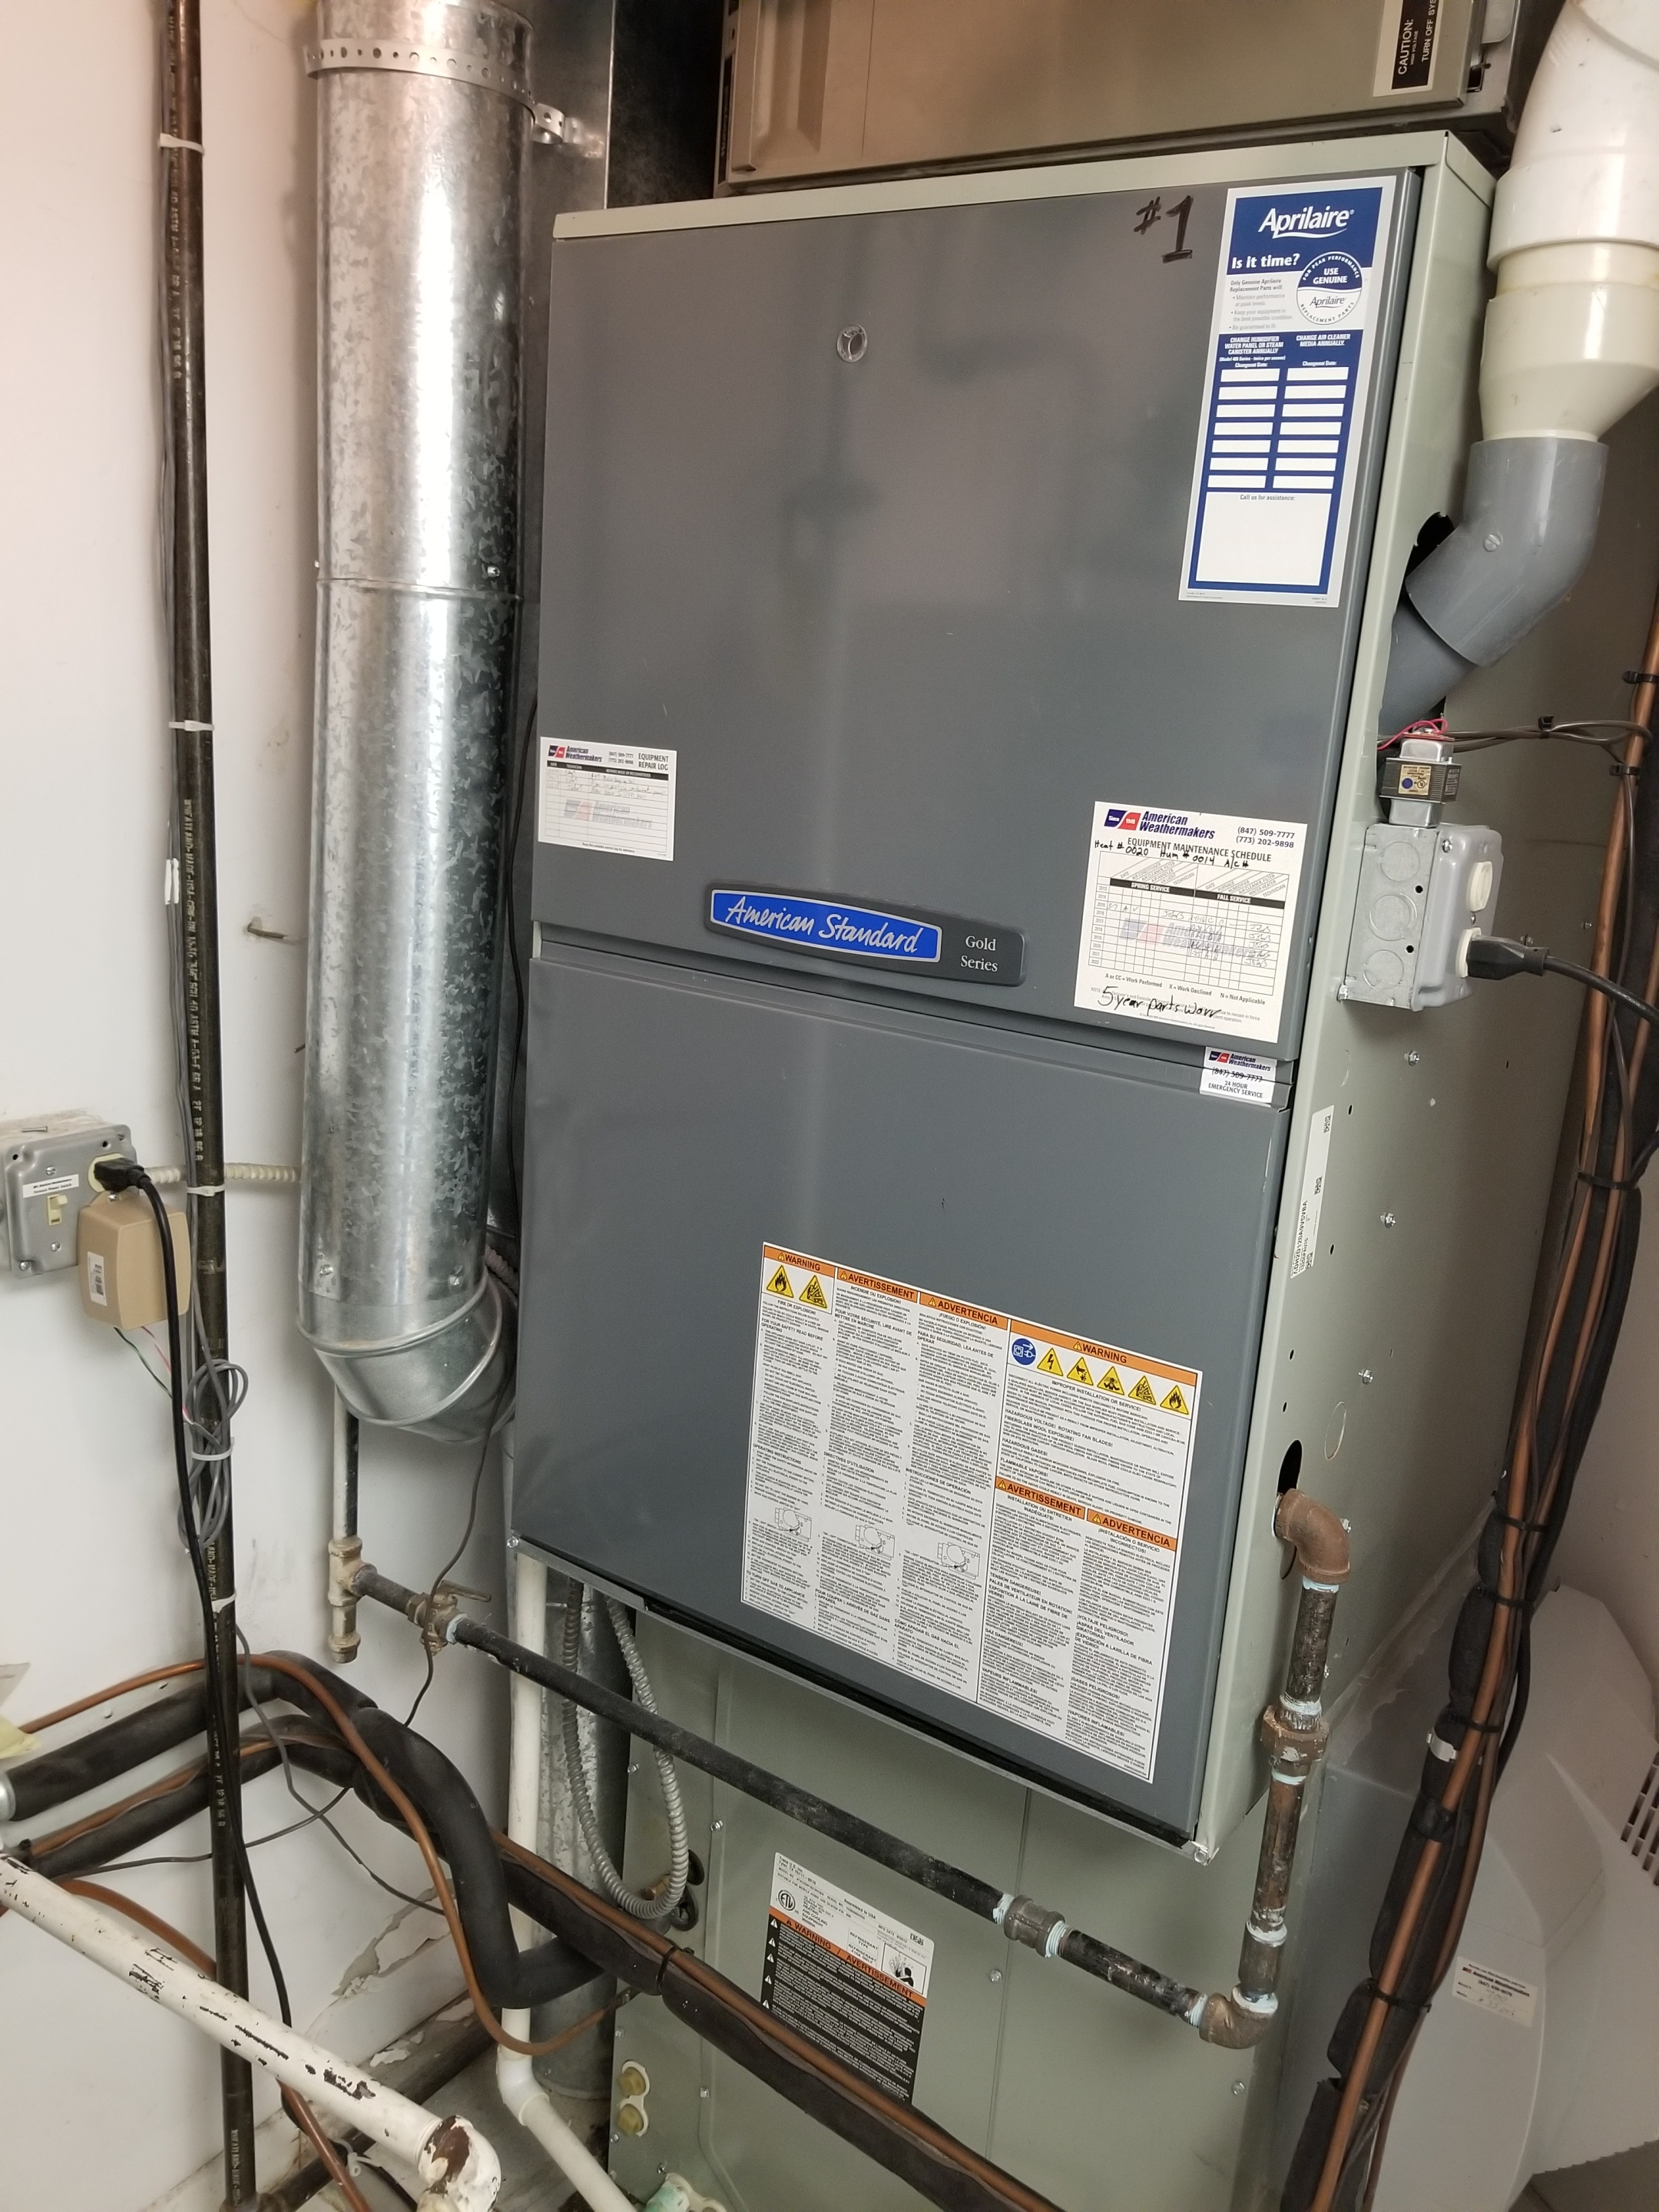 Performed annual maintenance on the American  Standard furnace and Aprilaire humidifier and made adjustments to improve the overall efficiency and life expectancy of the equipment.